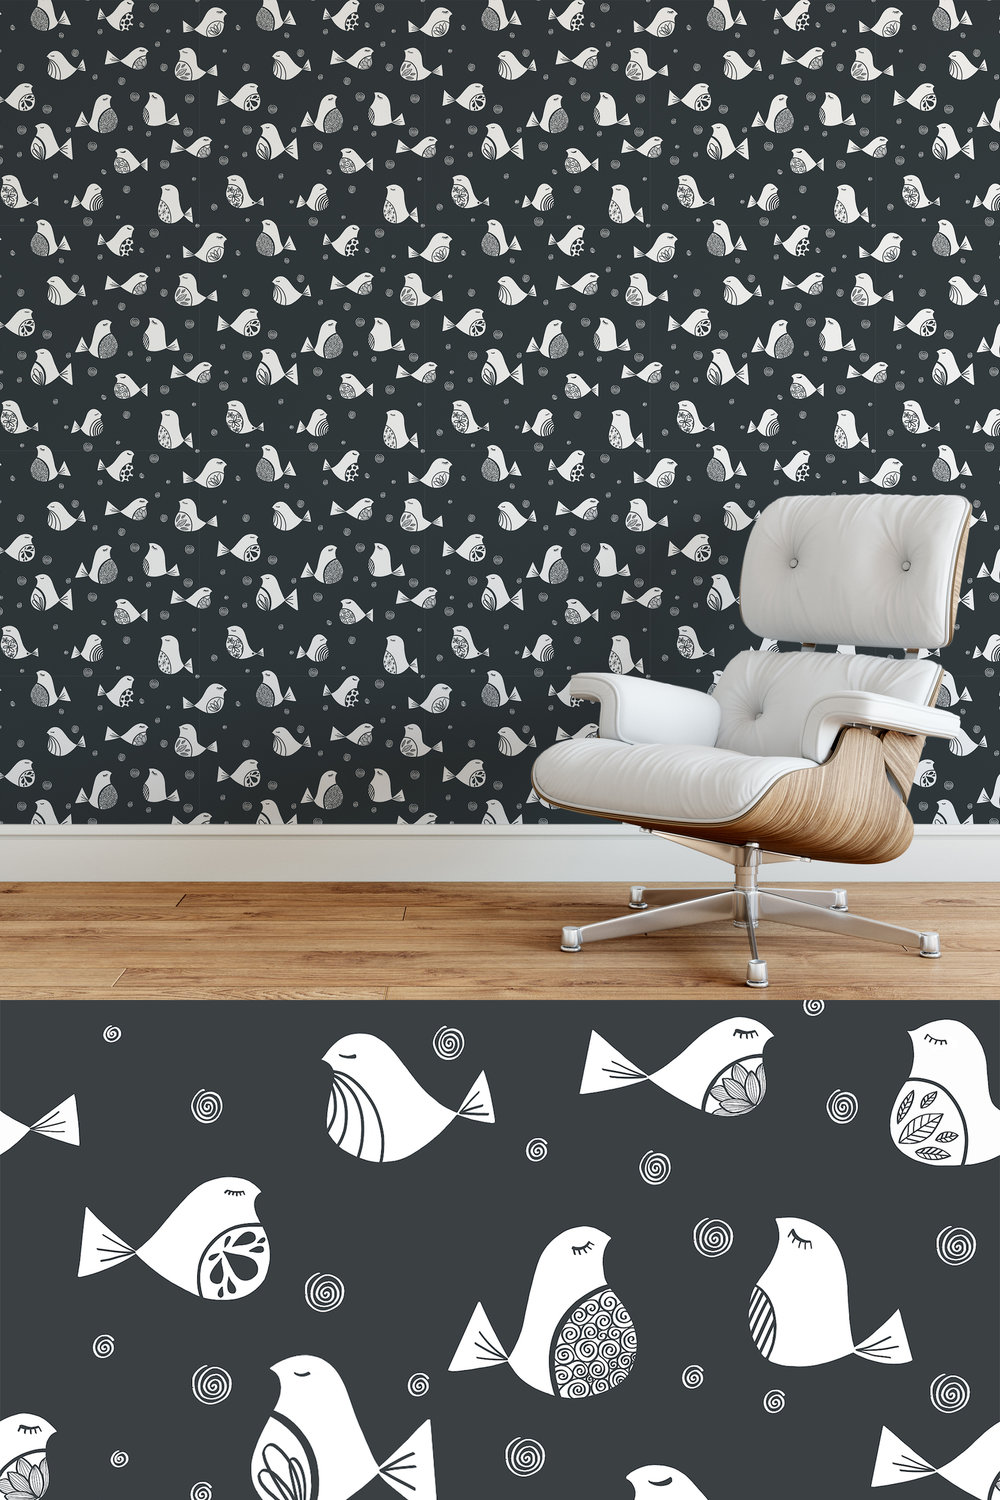 Sorayda Ceballos Lopez  - Fancy Birds Pattern